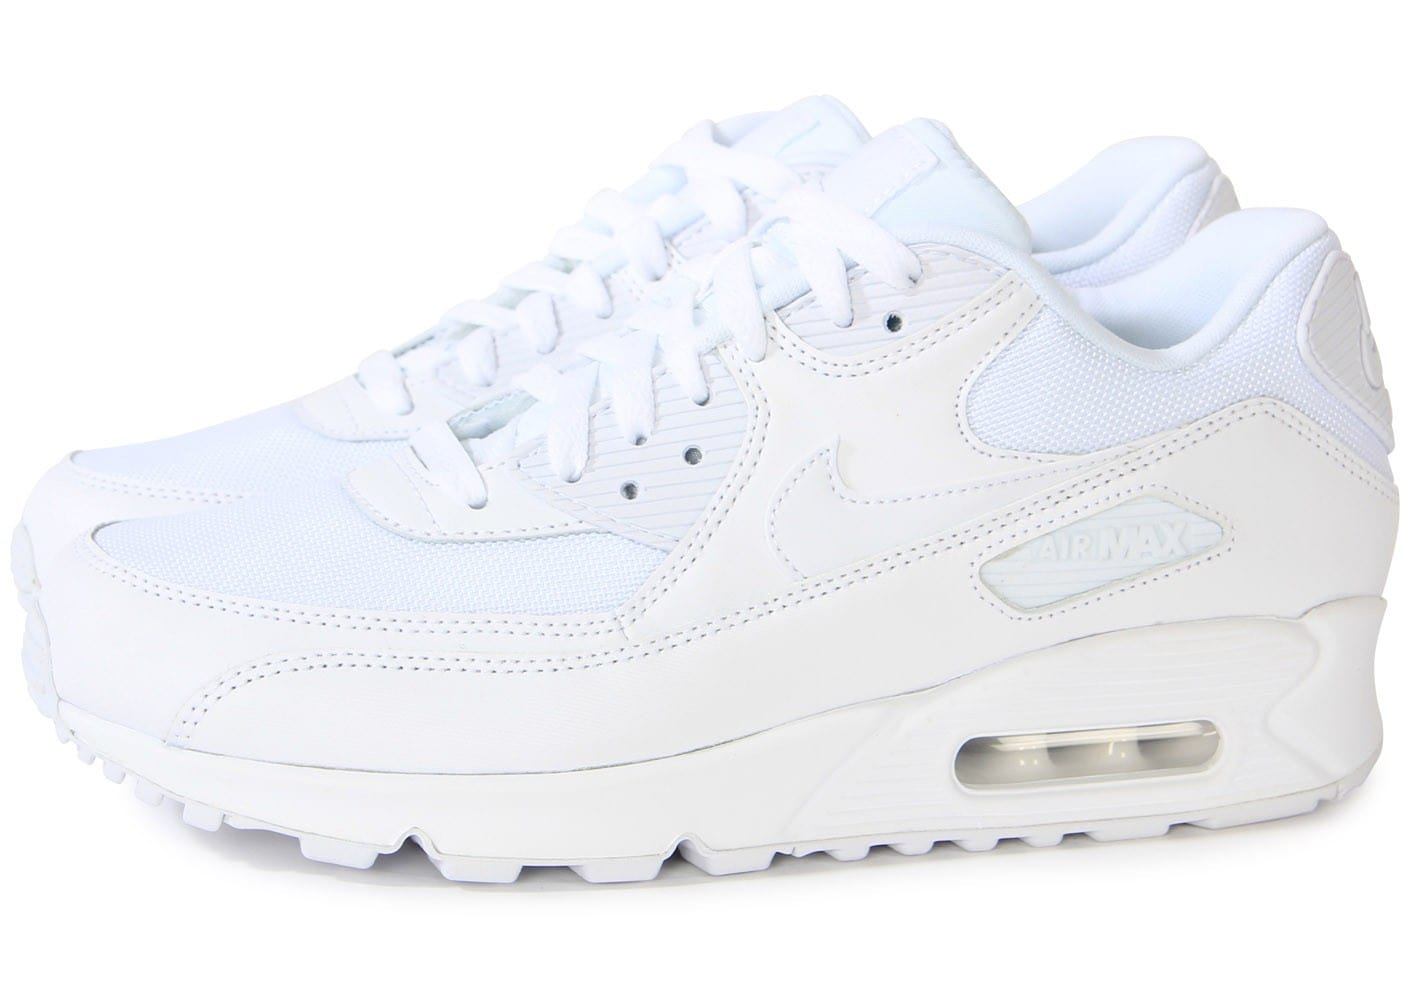 Nike Air Max 90 Essential Blanche - Chaussures Baskets homme ...